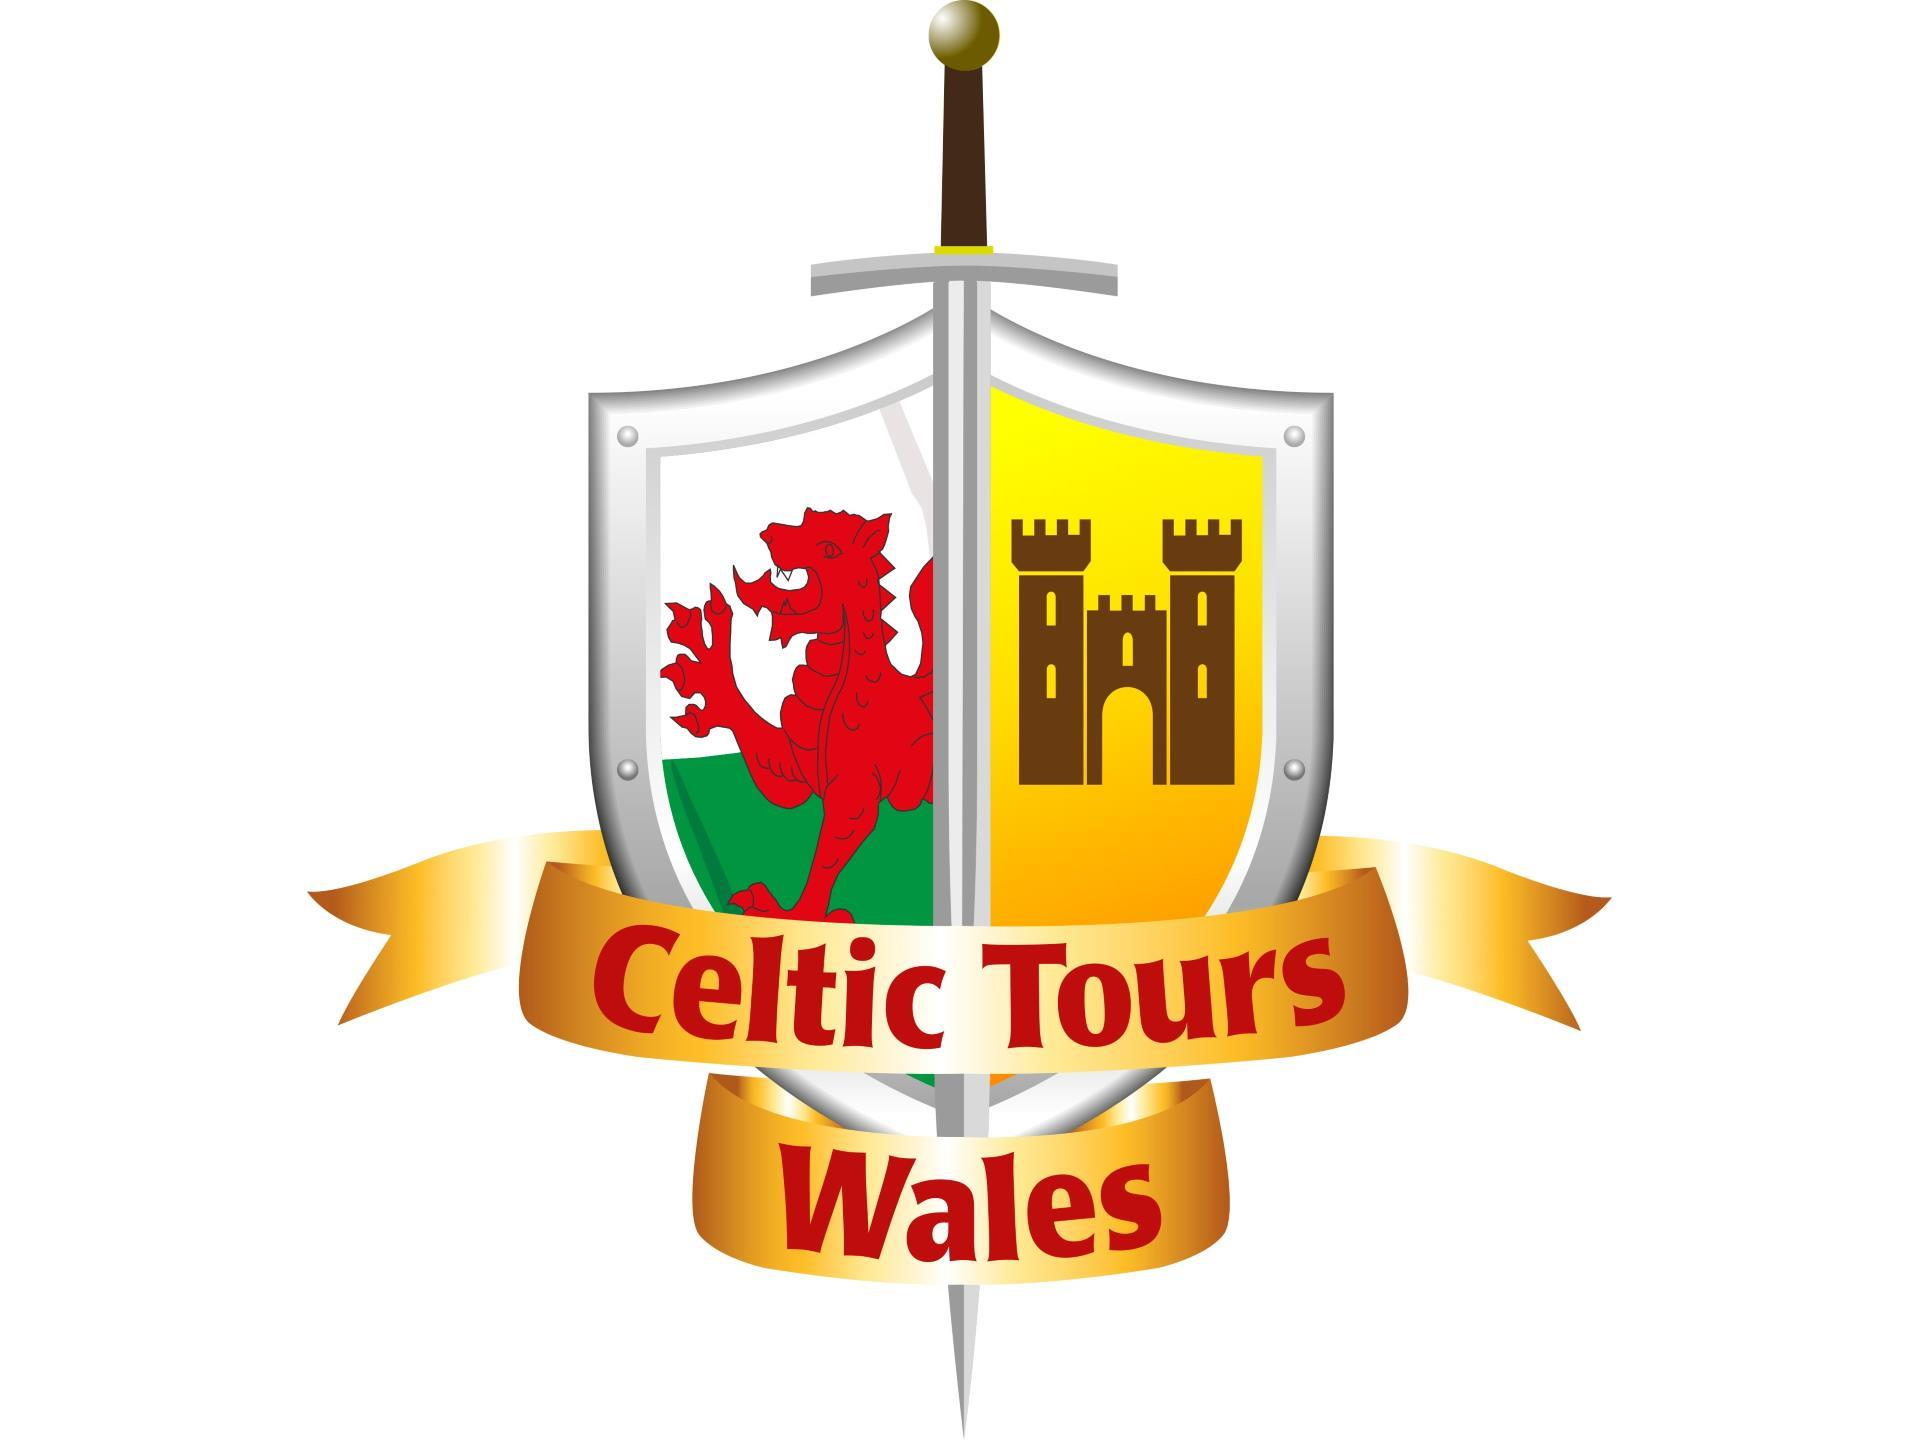 Celtic Tours Wales logo